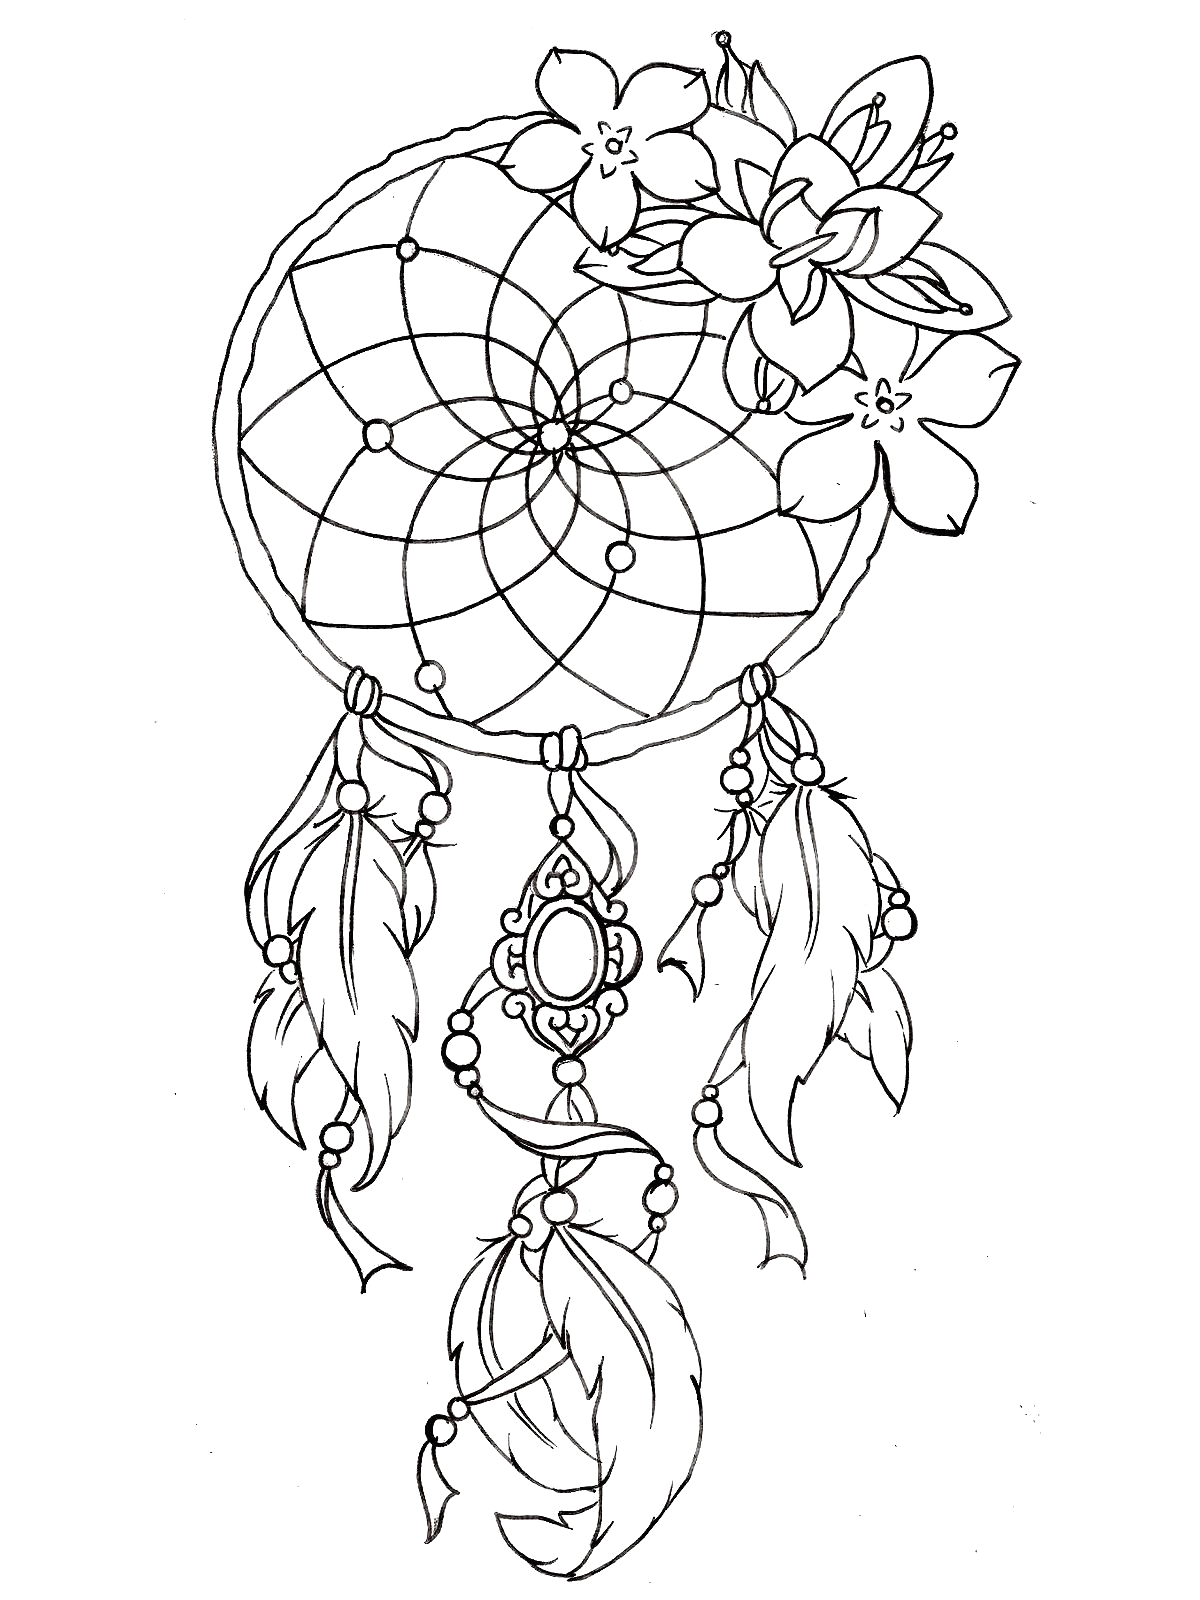 Free Printable Tattoo Coloring Pages for Adults Dreamcatcher Tattoo Designs Tattoos Adult Coloring Pages